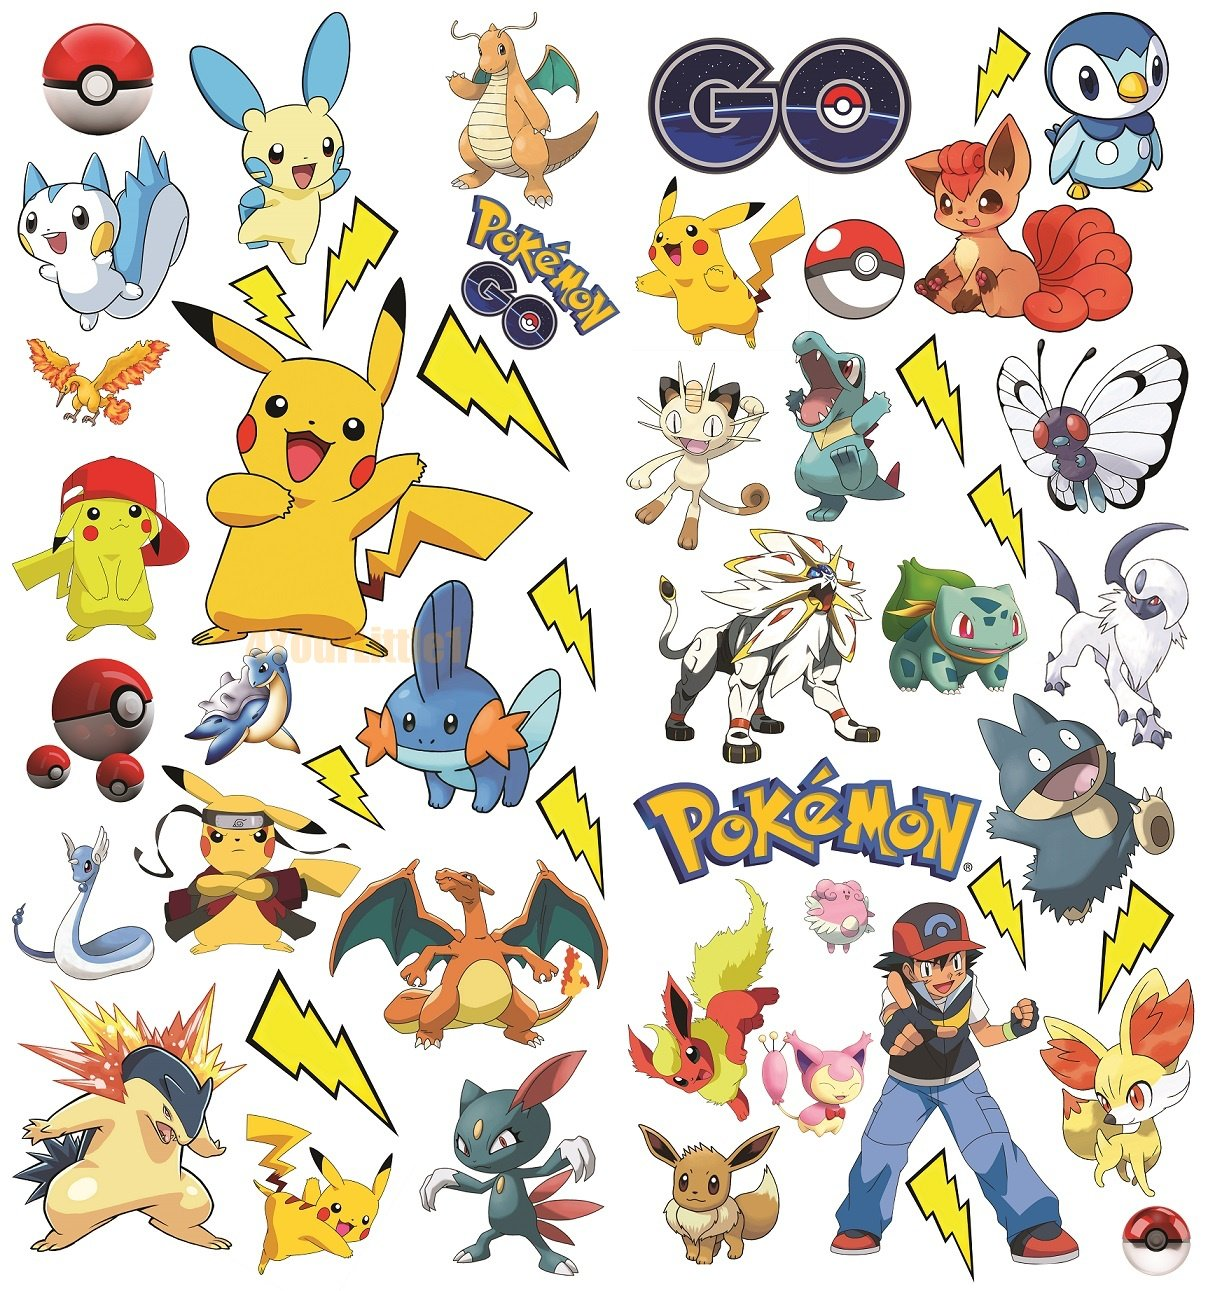 Pokemon Wall Art Stickers for Kids 4YourLittle1